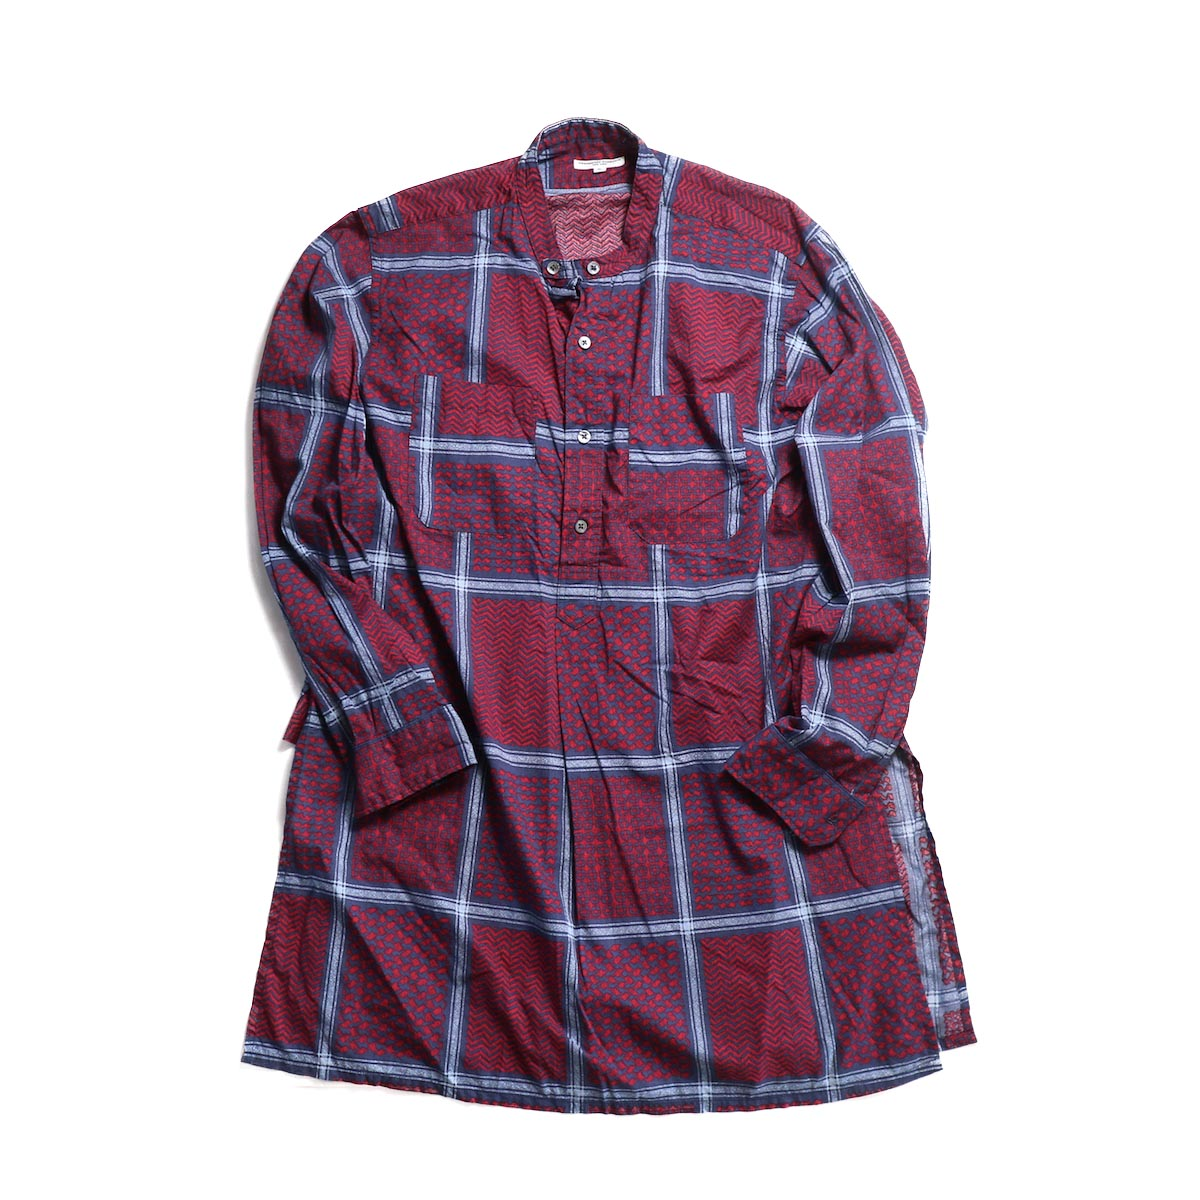 Engineered Garments / Banded Collar Long Shirt - Afghan Print (Nvy/Red)